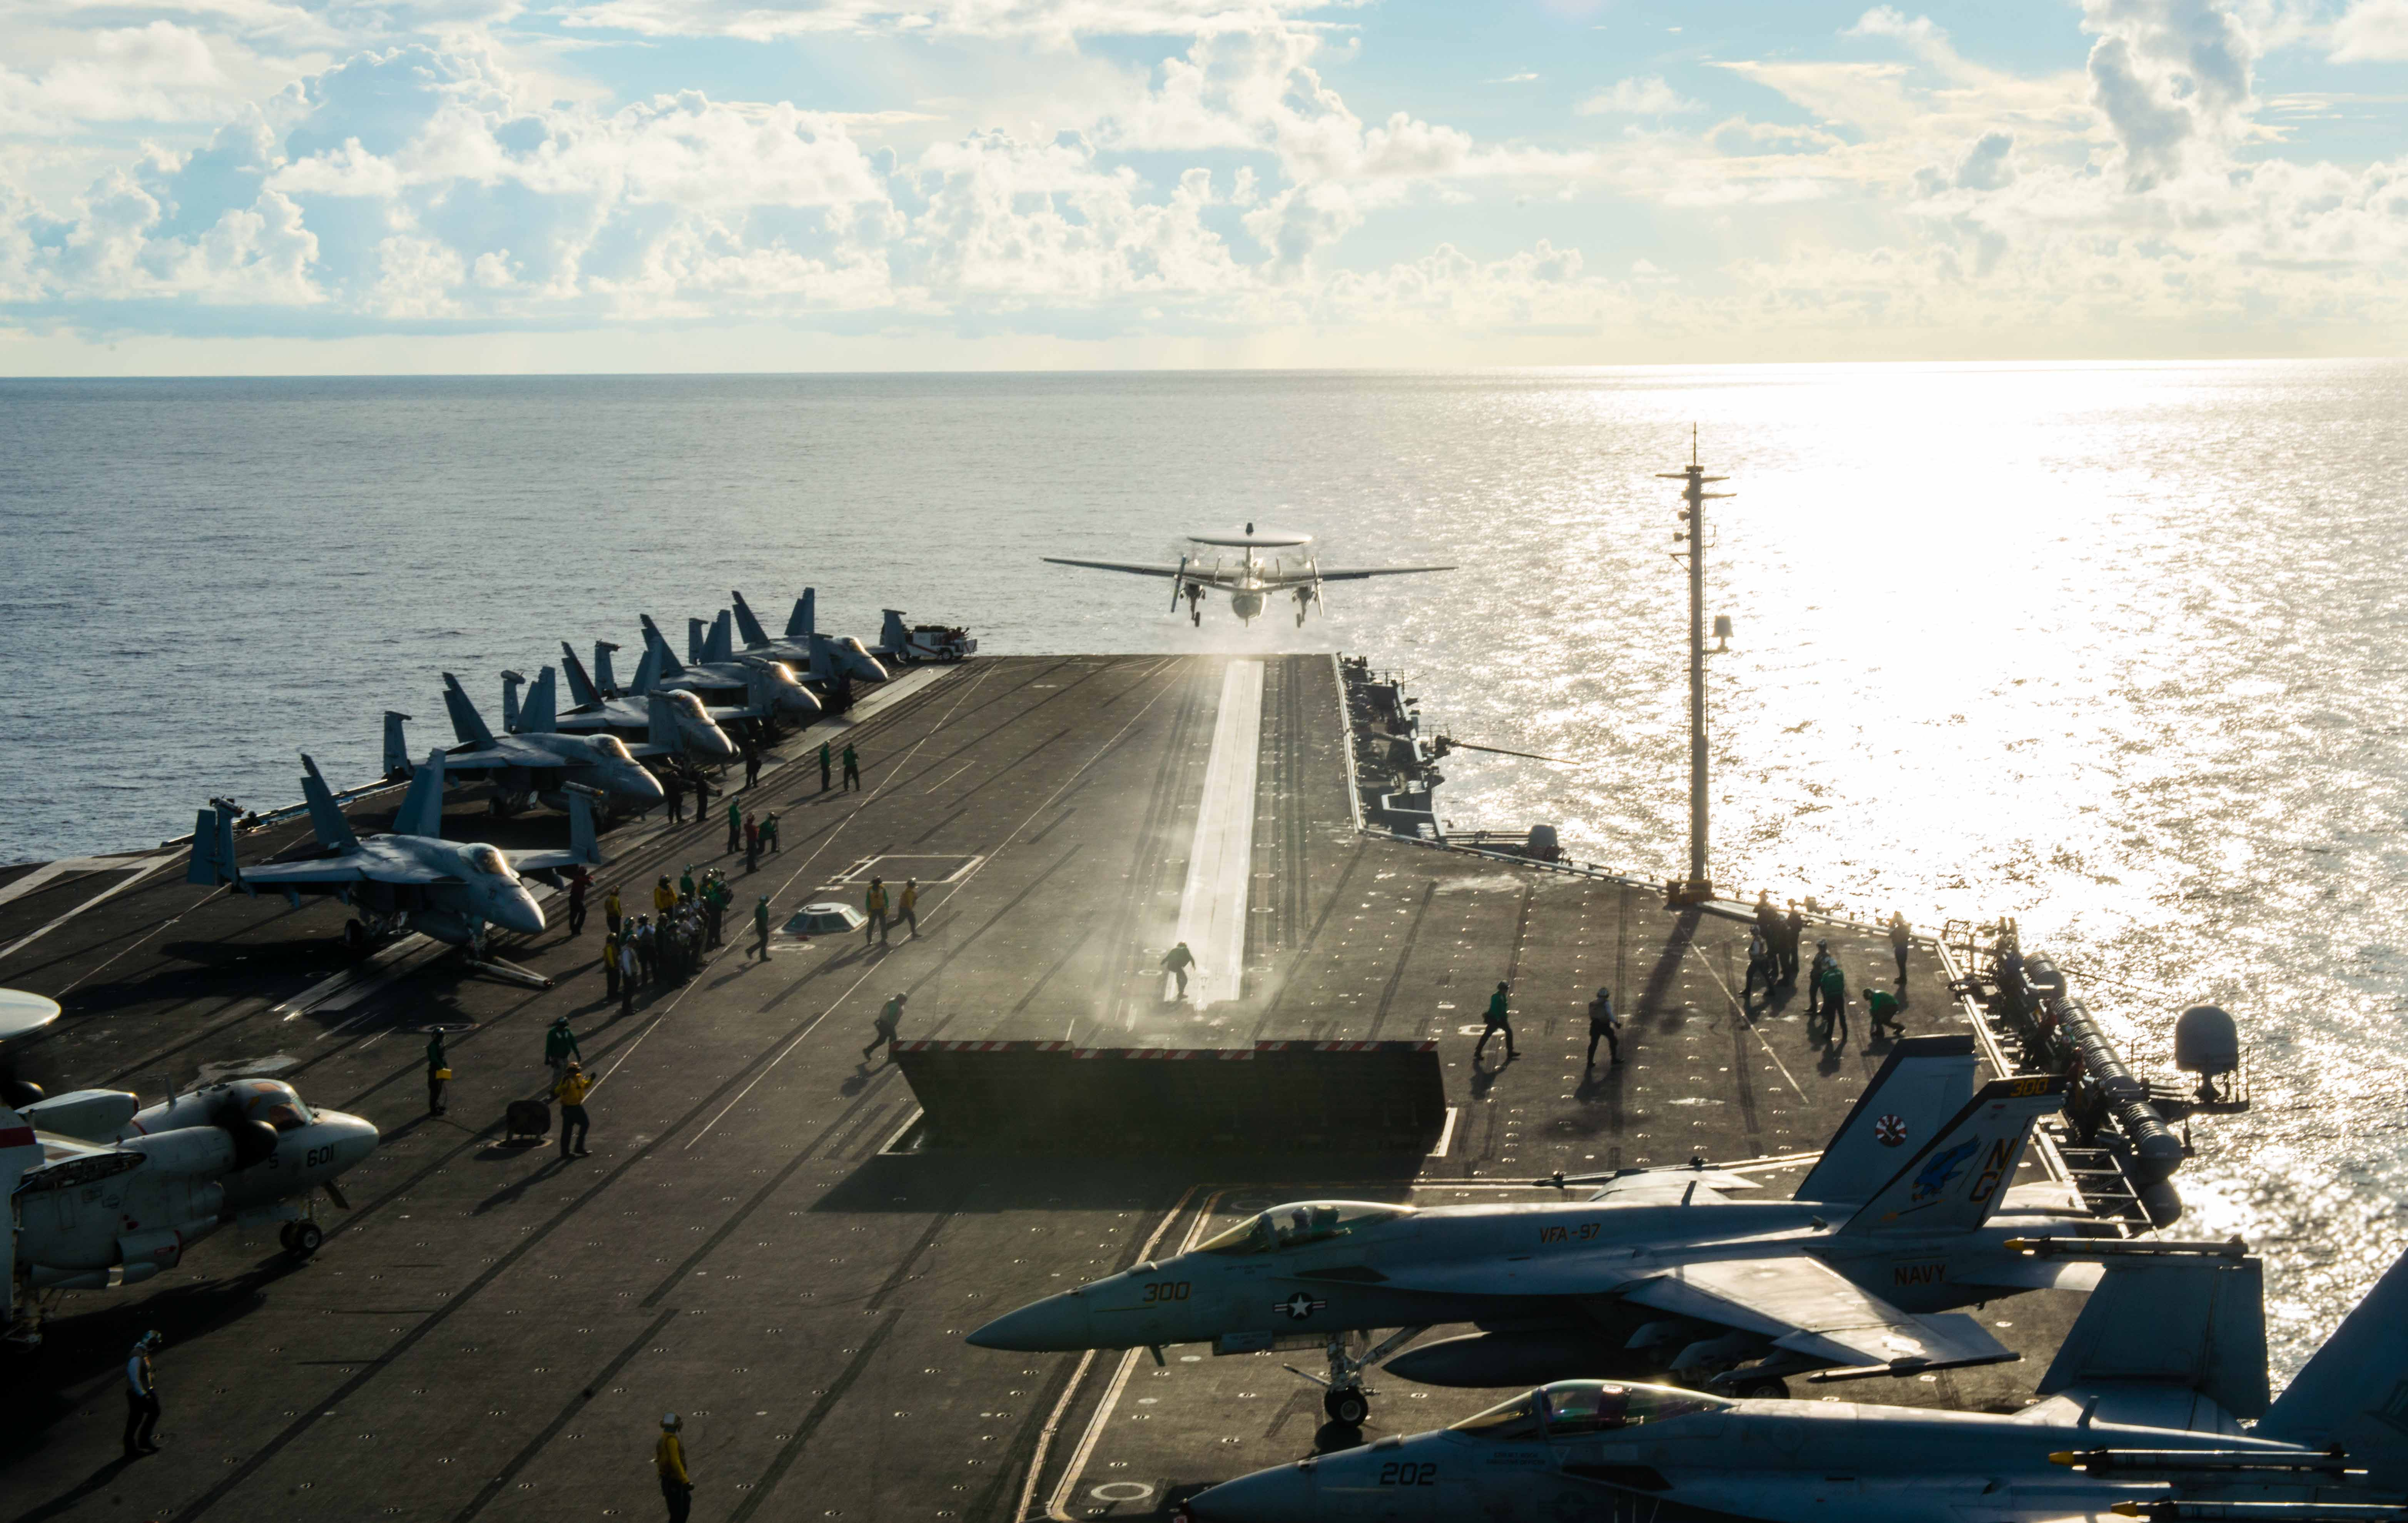 An E-2C Hawkeye assigned to the Golden Hawks of Airborne Early Warning Squadron (VAW) 112 launches from USS John C. Stennis' (CVN 74) flight deck with Chief of Naval Operations (CNO) Adm. John Richardson aboard on June 5, 2016. US Navy photo.